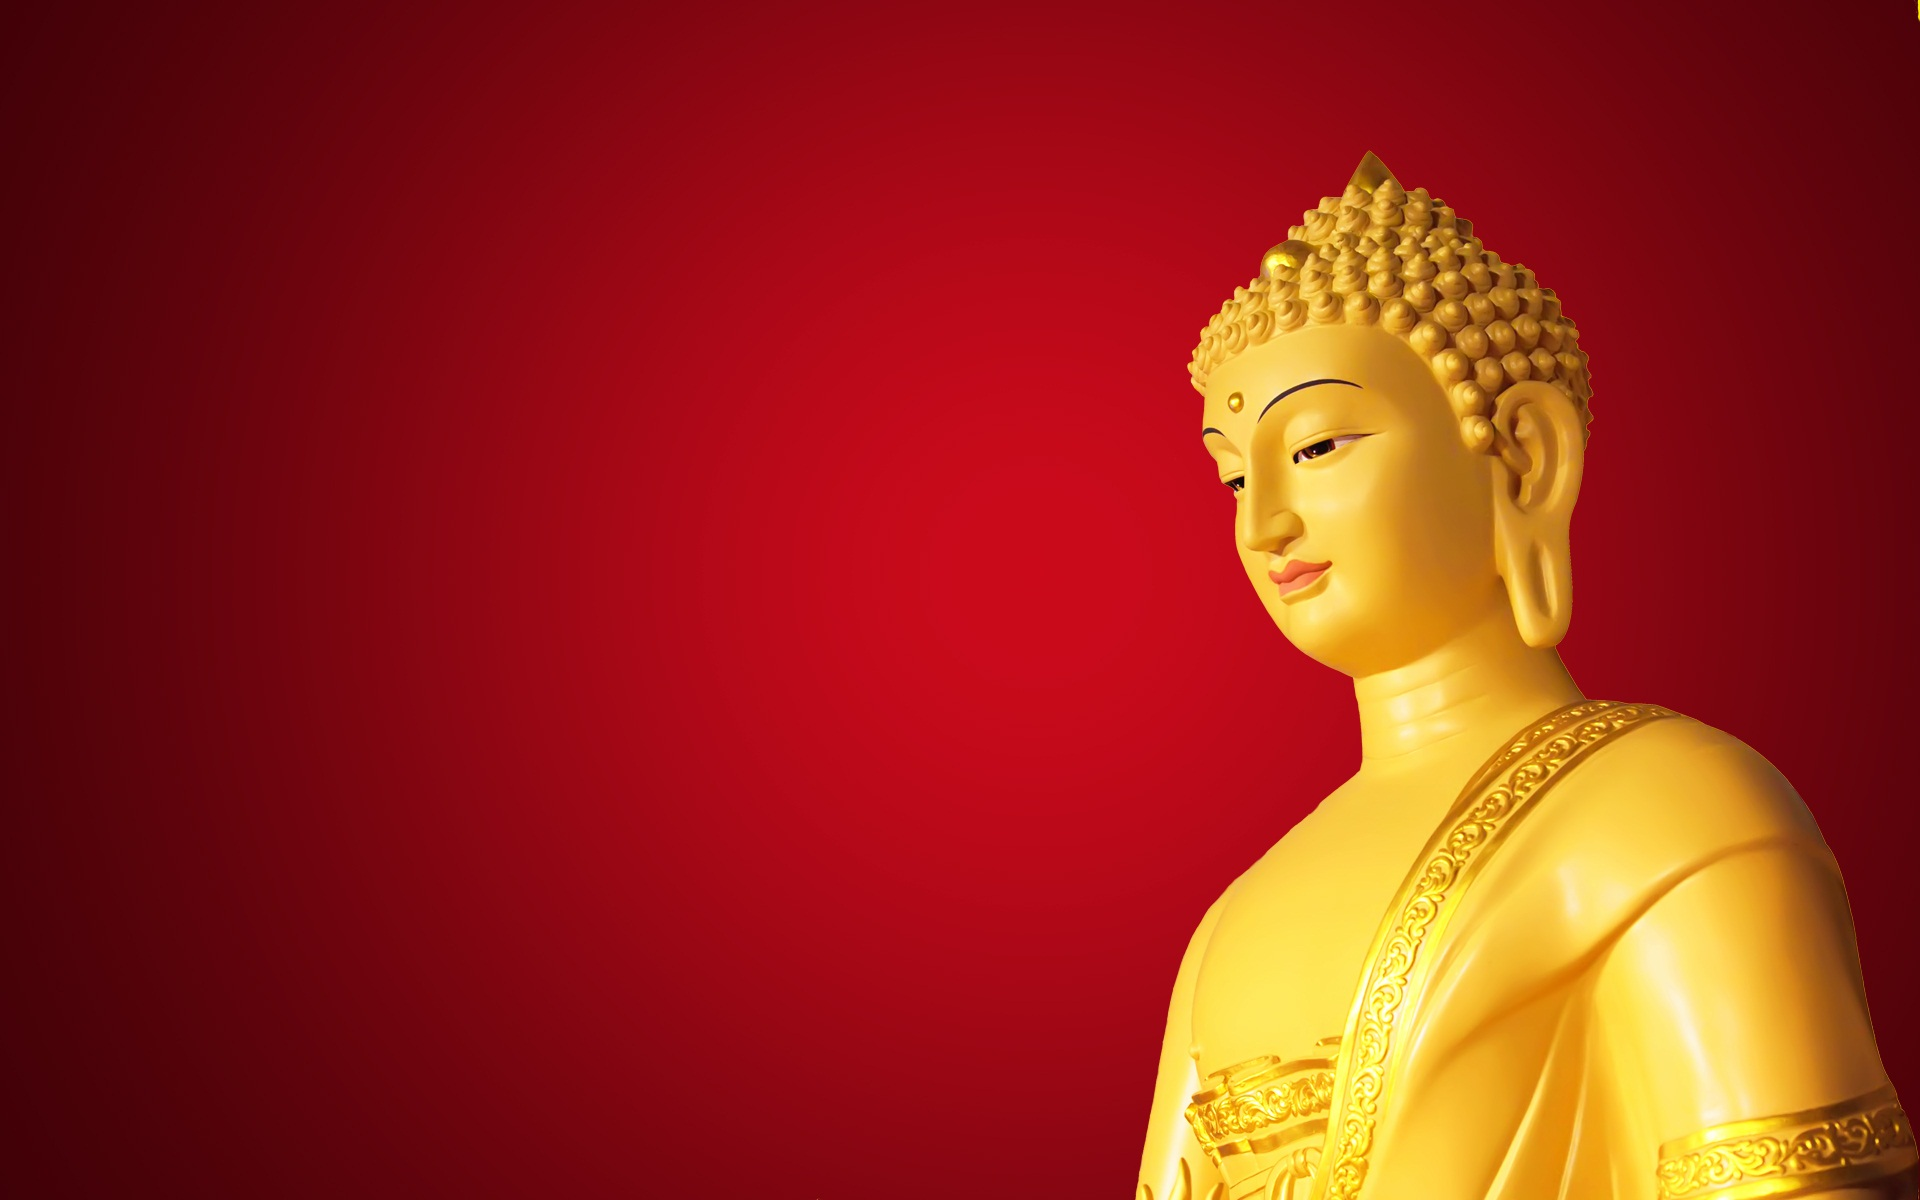 Buddha Wallpaper Hd 1920x1080